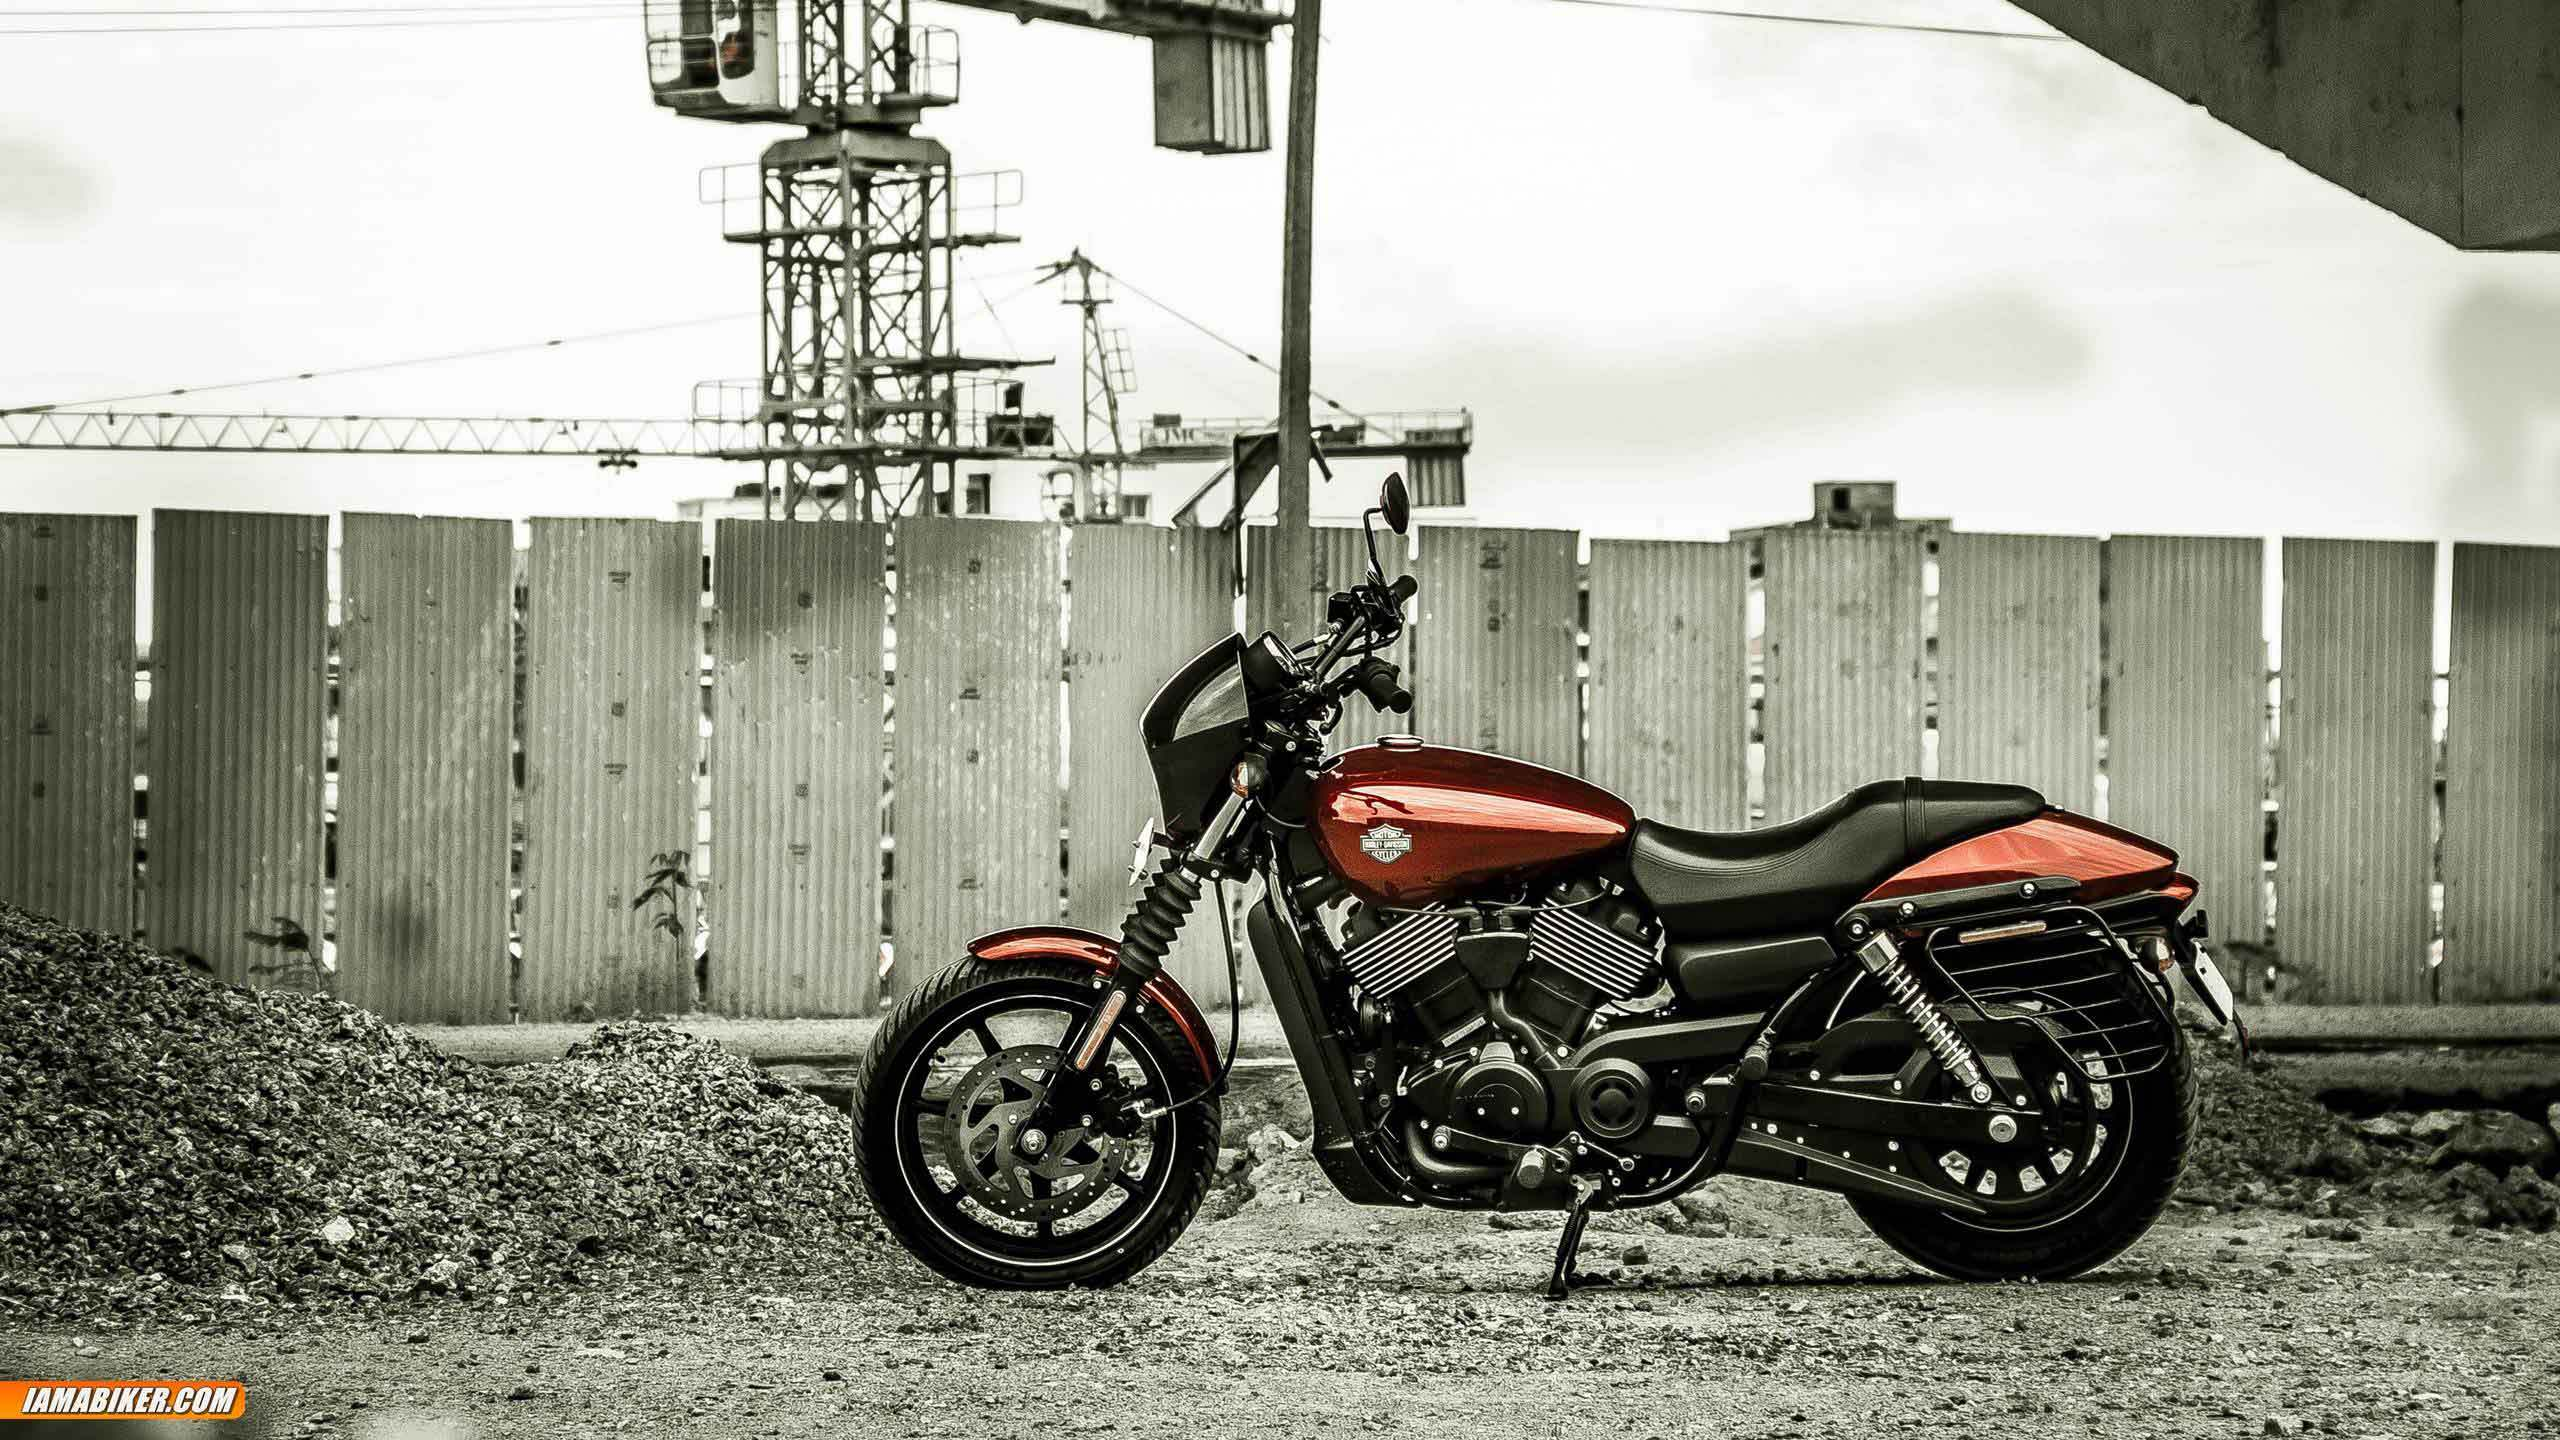 For A Detailed Road Test Report, Check Out The Harley